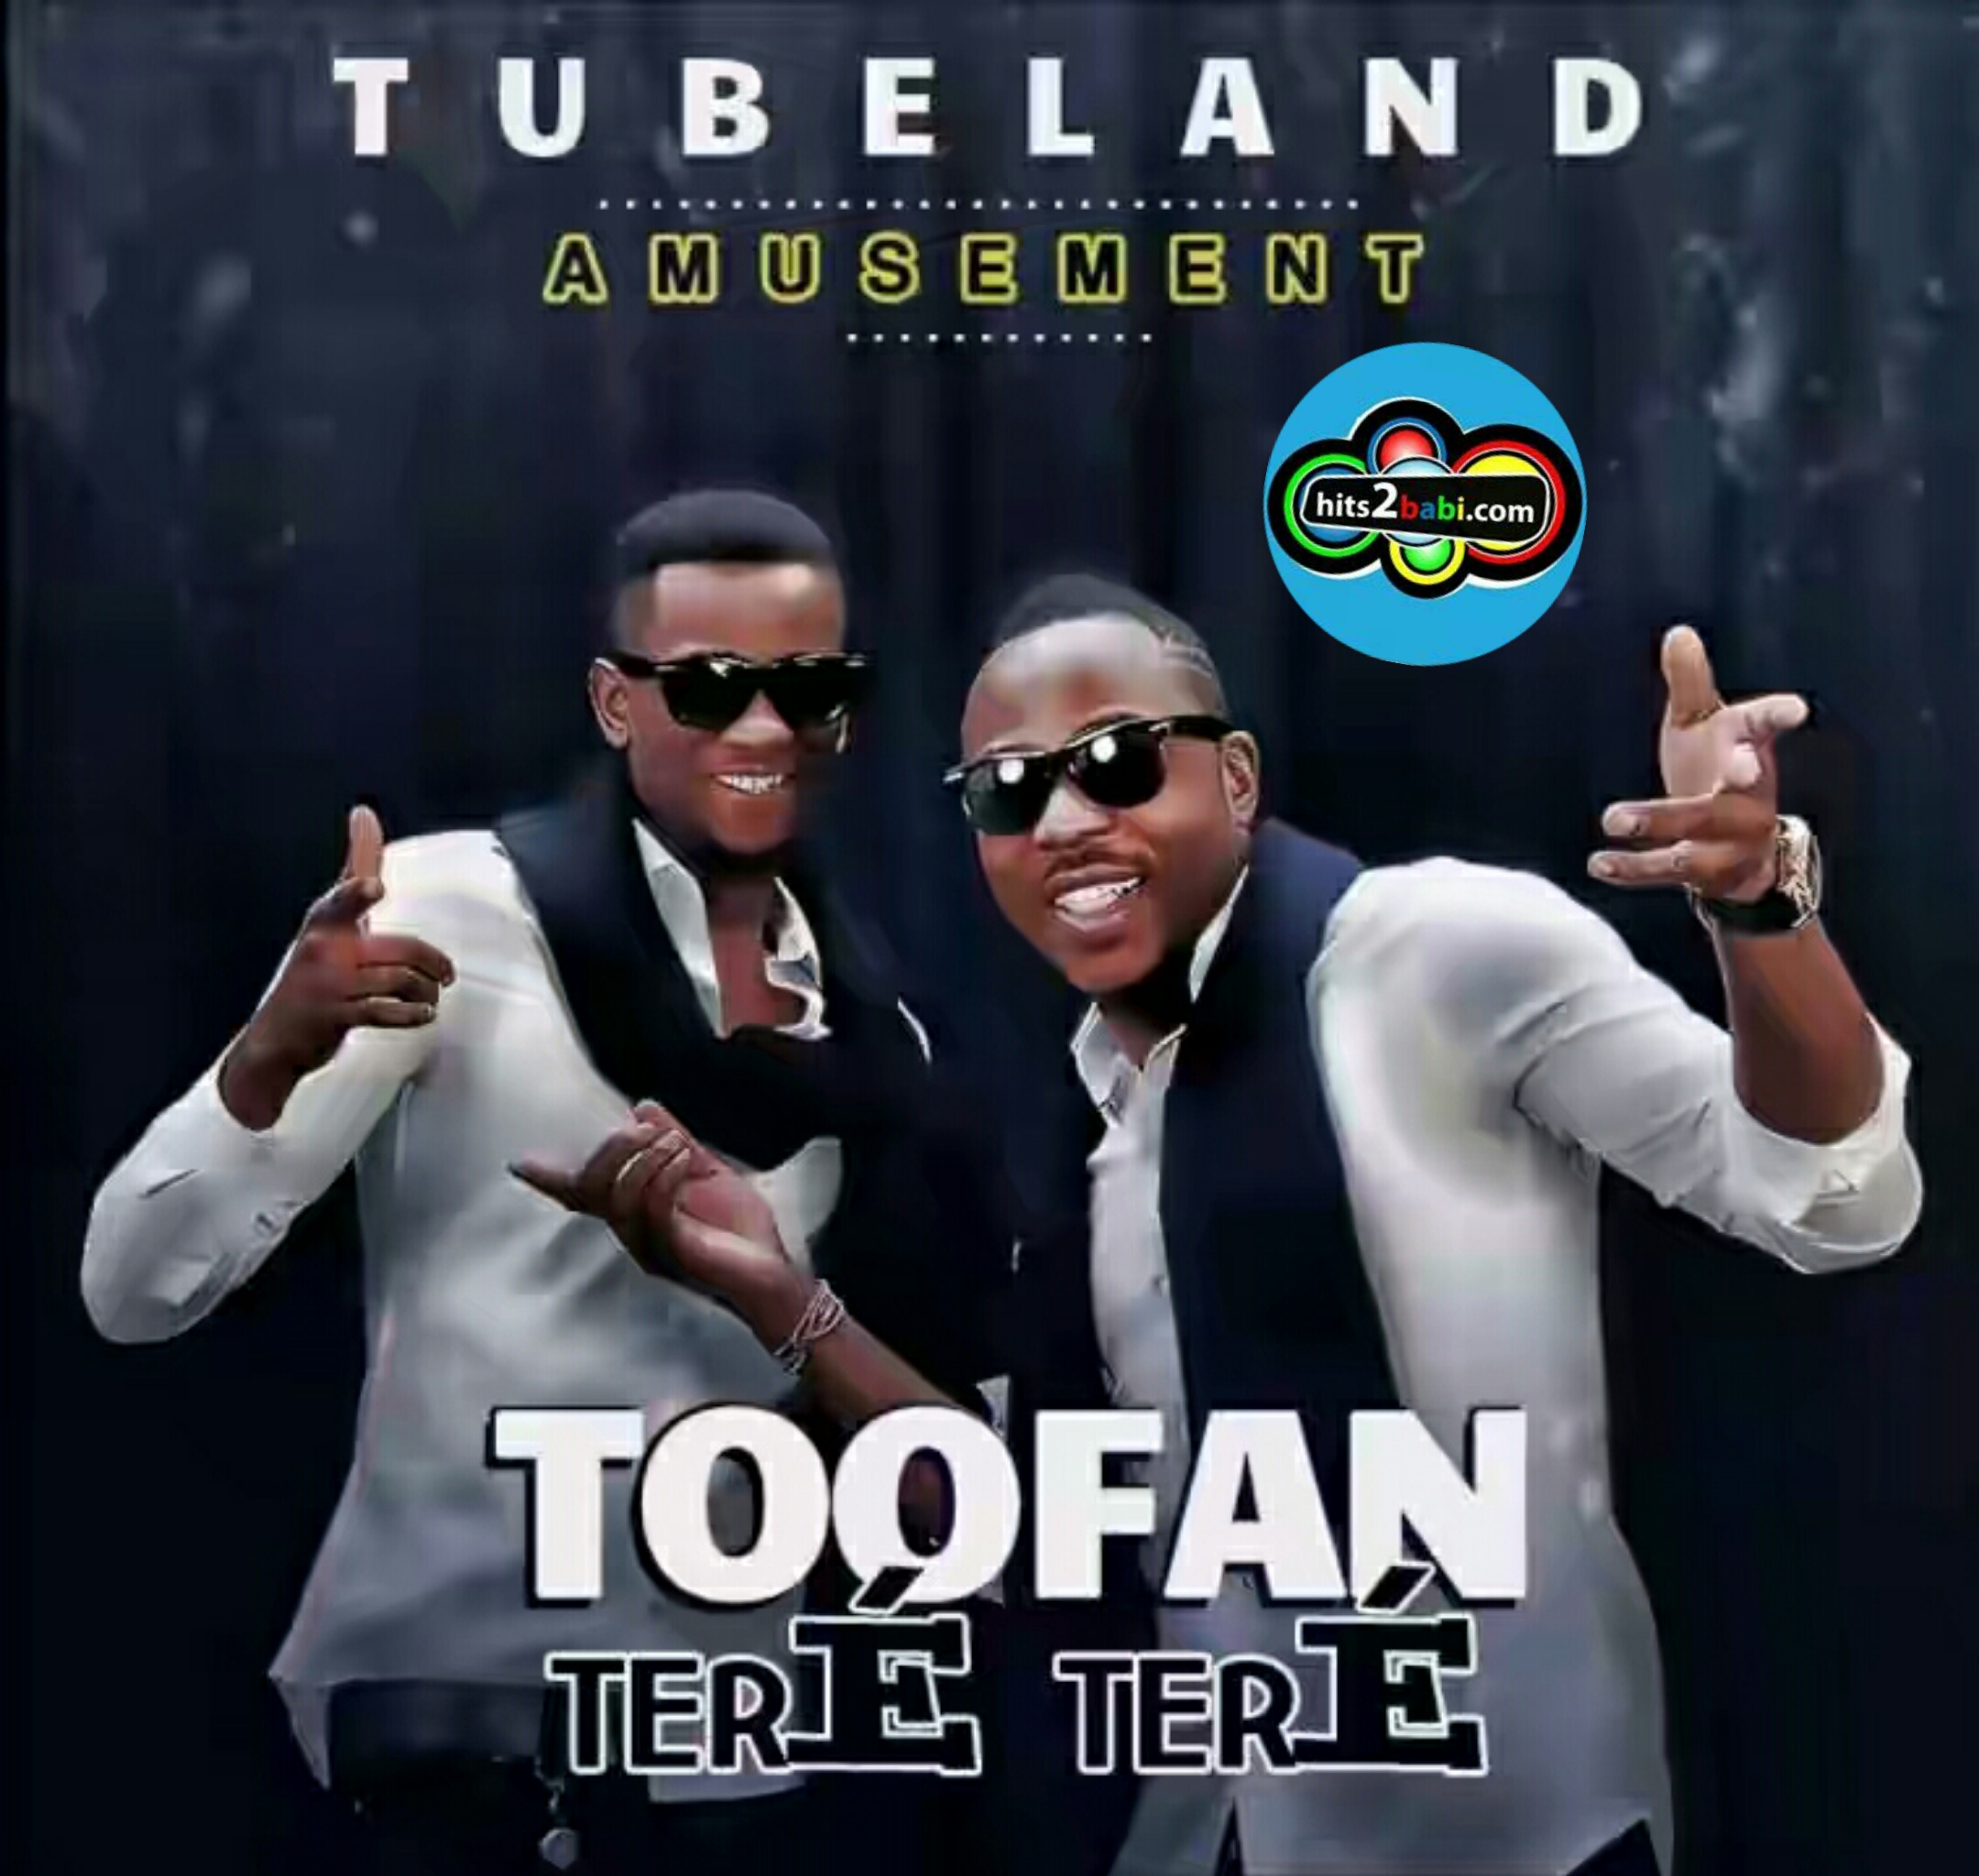 TOOFAN - TERE TERE (Version - Amusement)